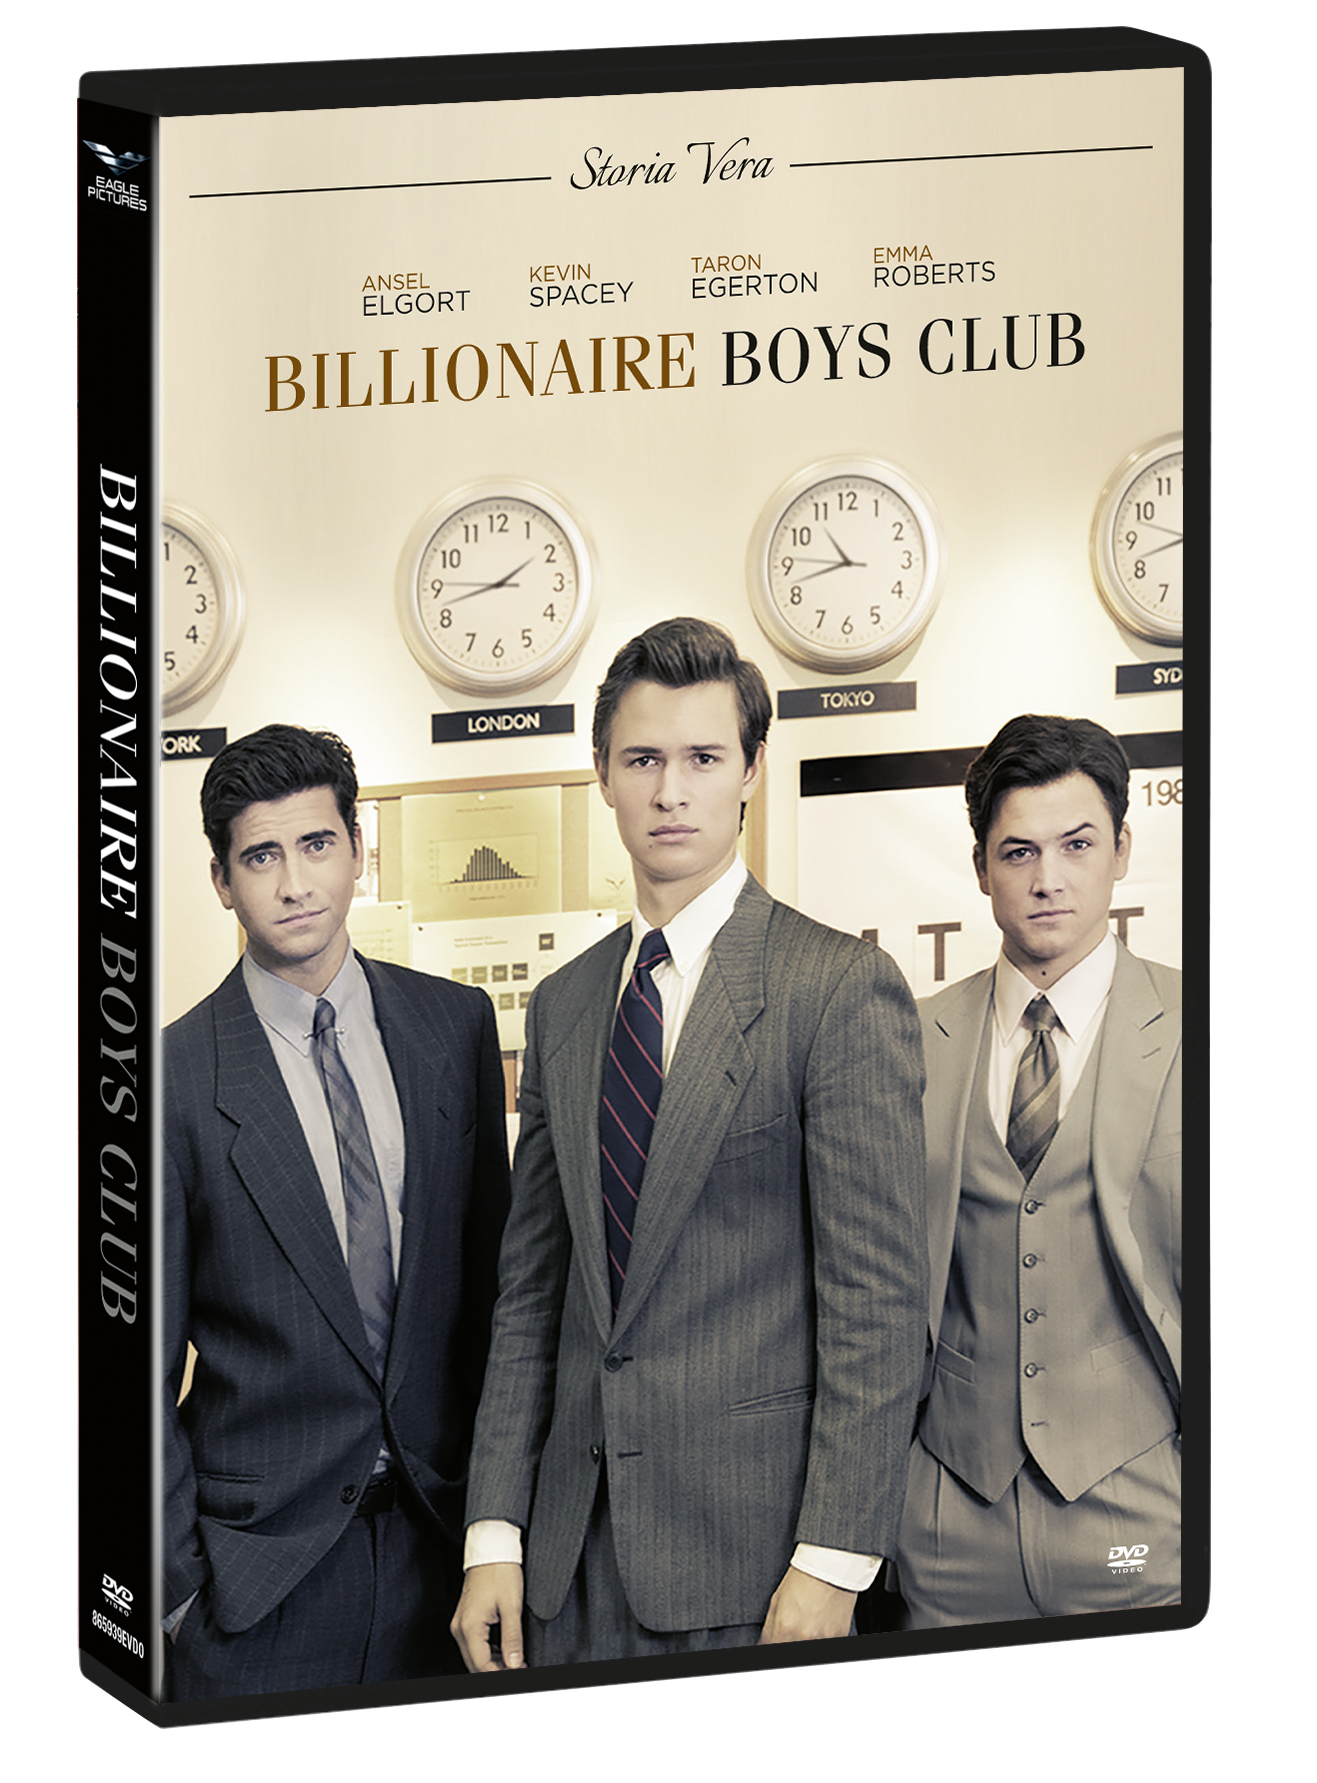 BILLIONAIRE BOYS CLUB (DVD)